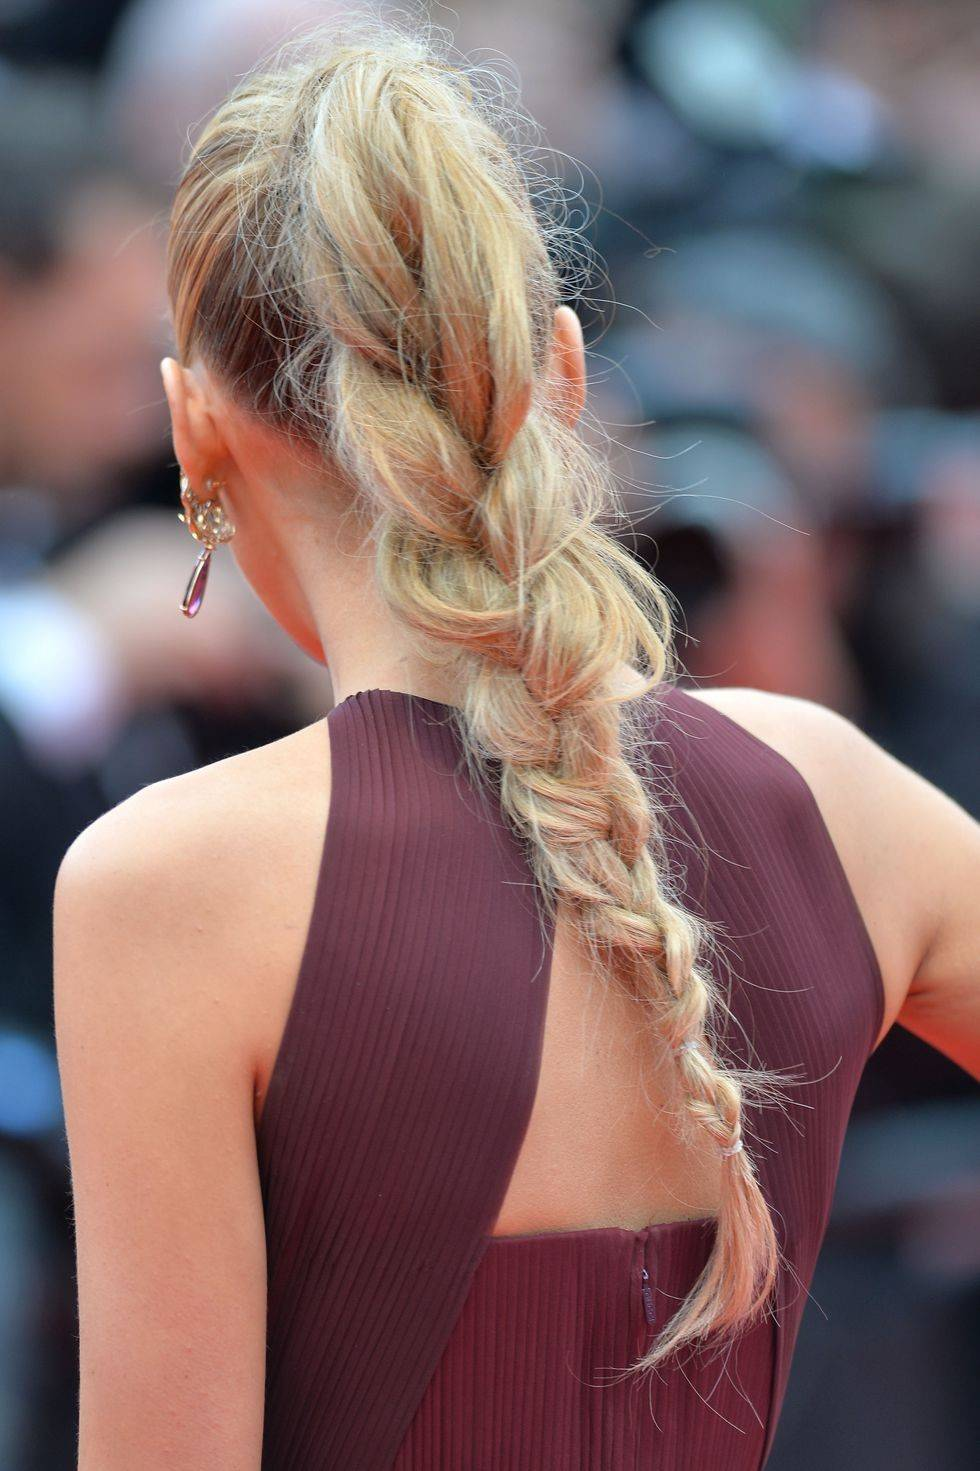 Woman with blonde ponytail braid